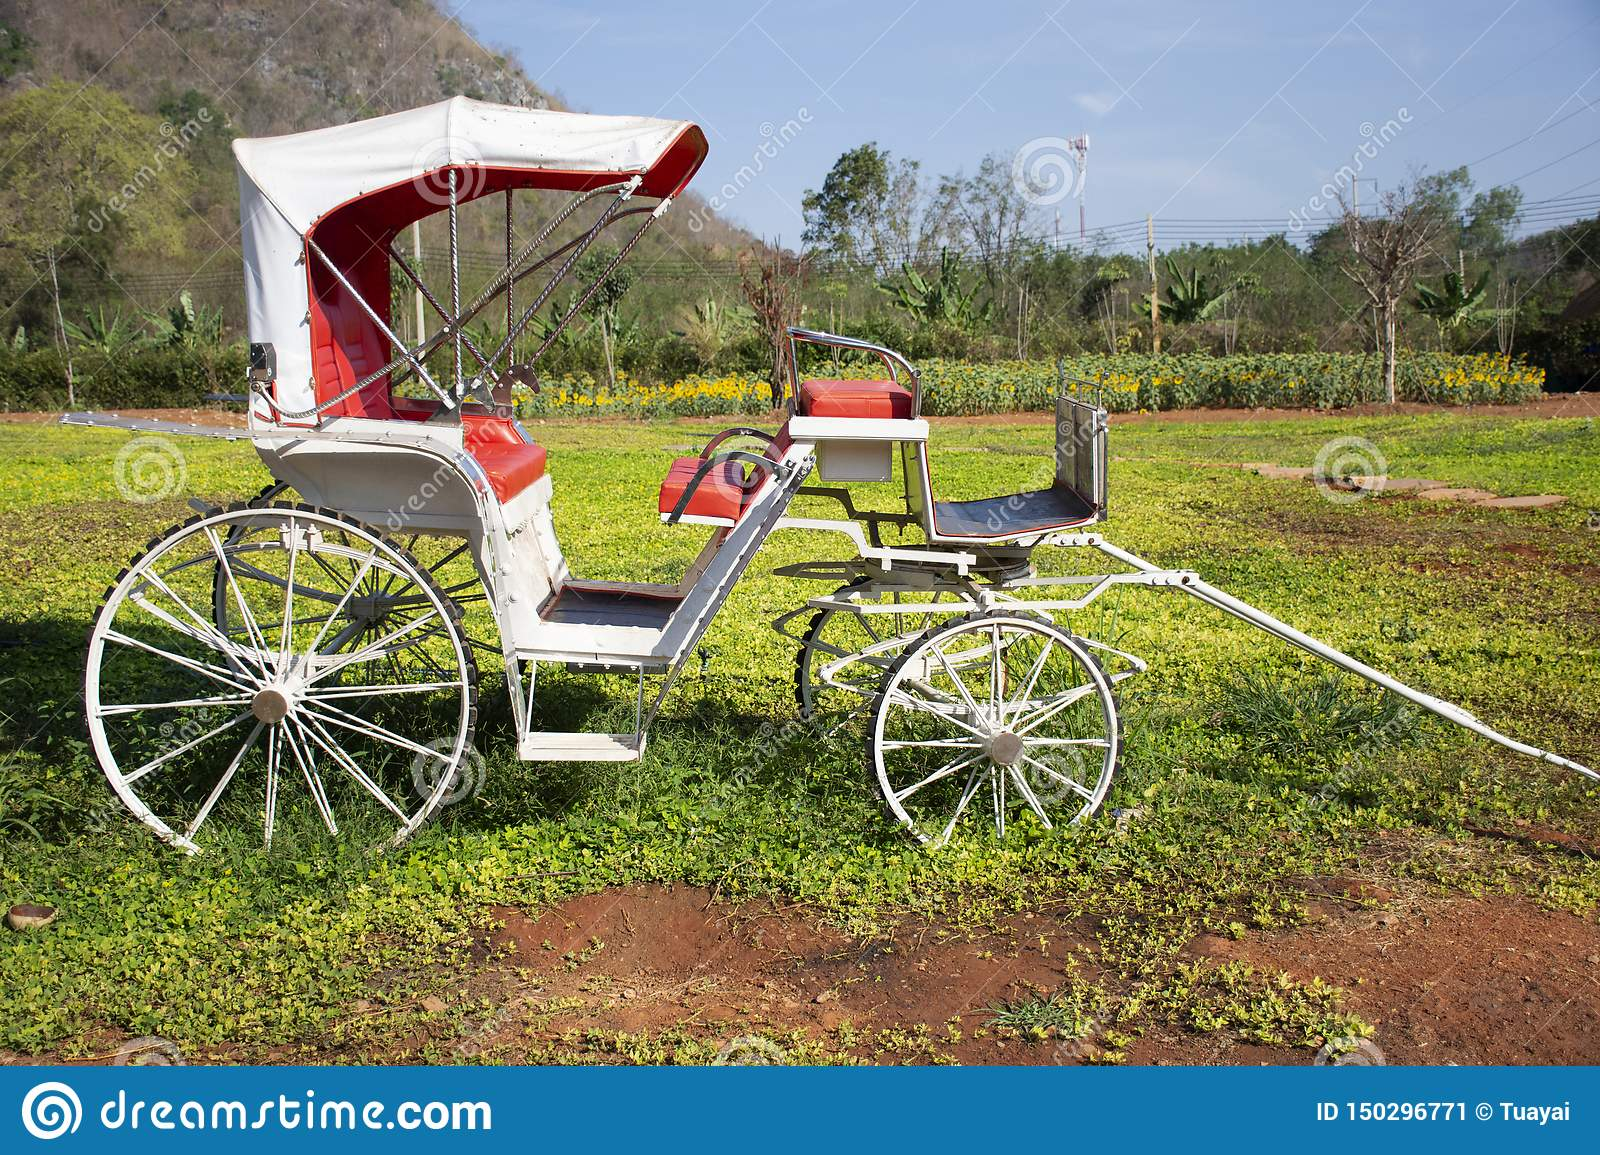 Classic vintage bicycle rickshaw at outdoor for thai people and travelers visit and take photo at Nakhon Ratchasima, Thailand T